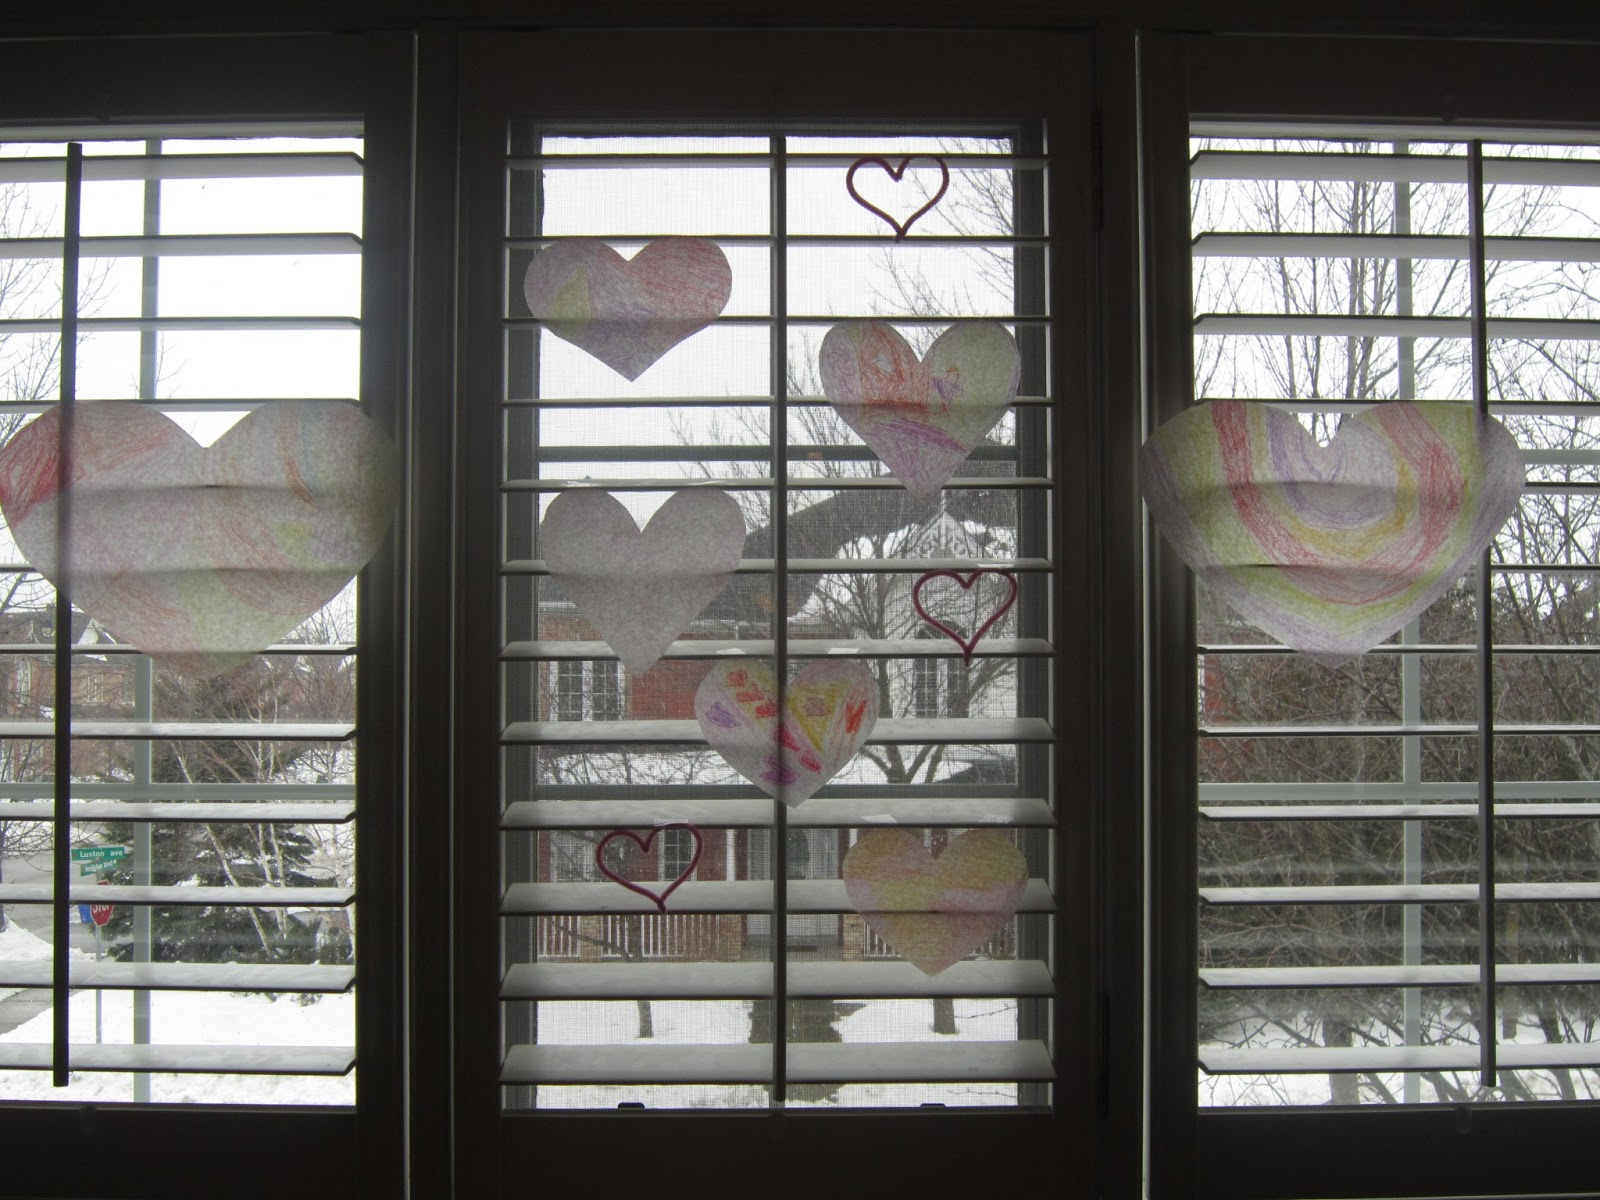 Valentines decor, crafts, kids crafts, hearts